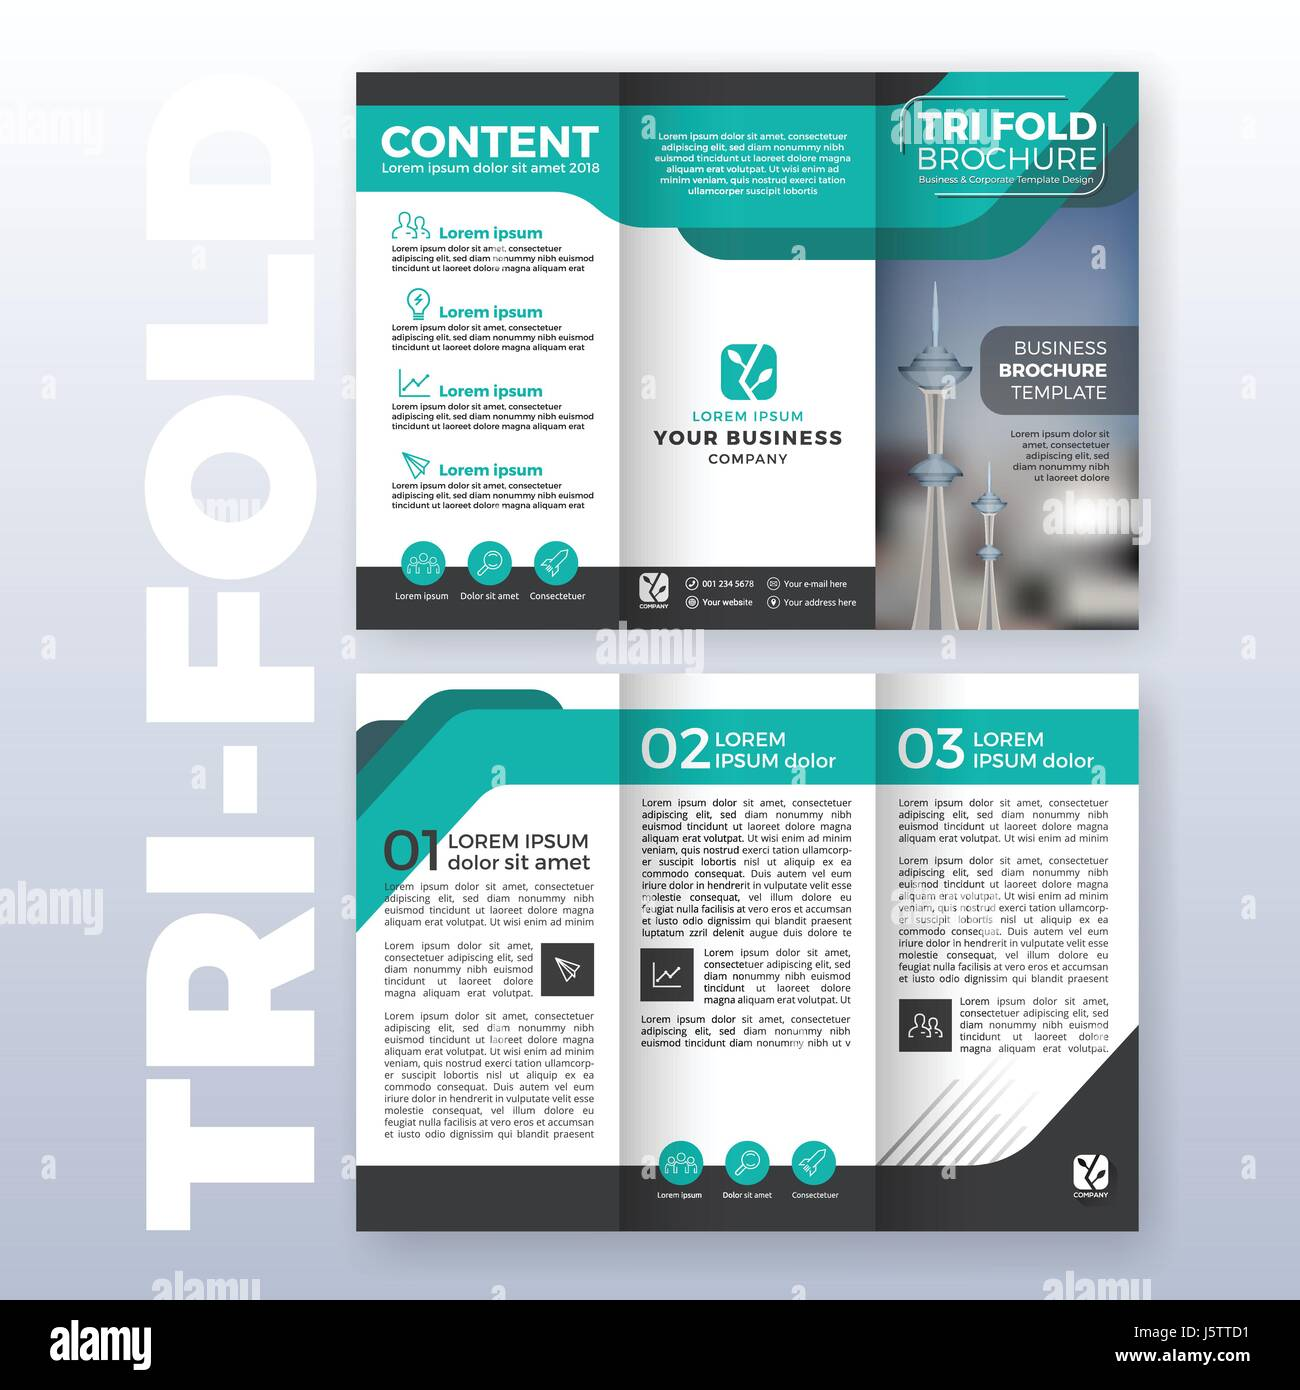 Tri fold stock photos tri fold stock images alamy for Brochures design templates